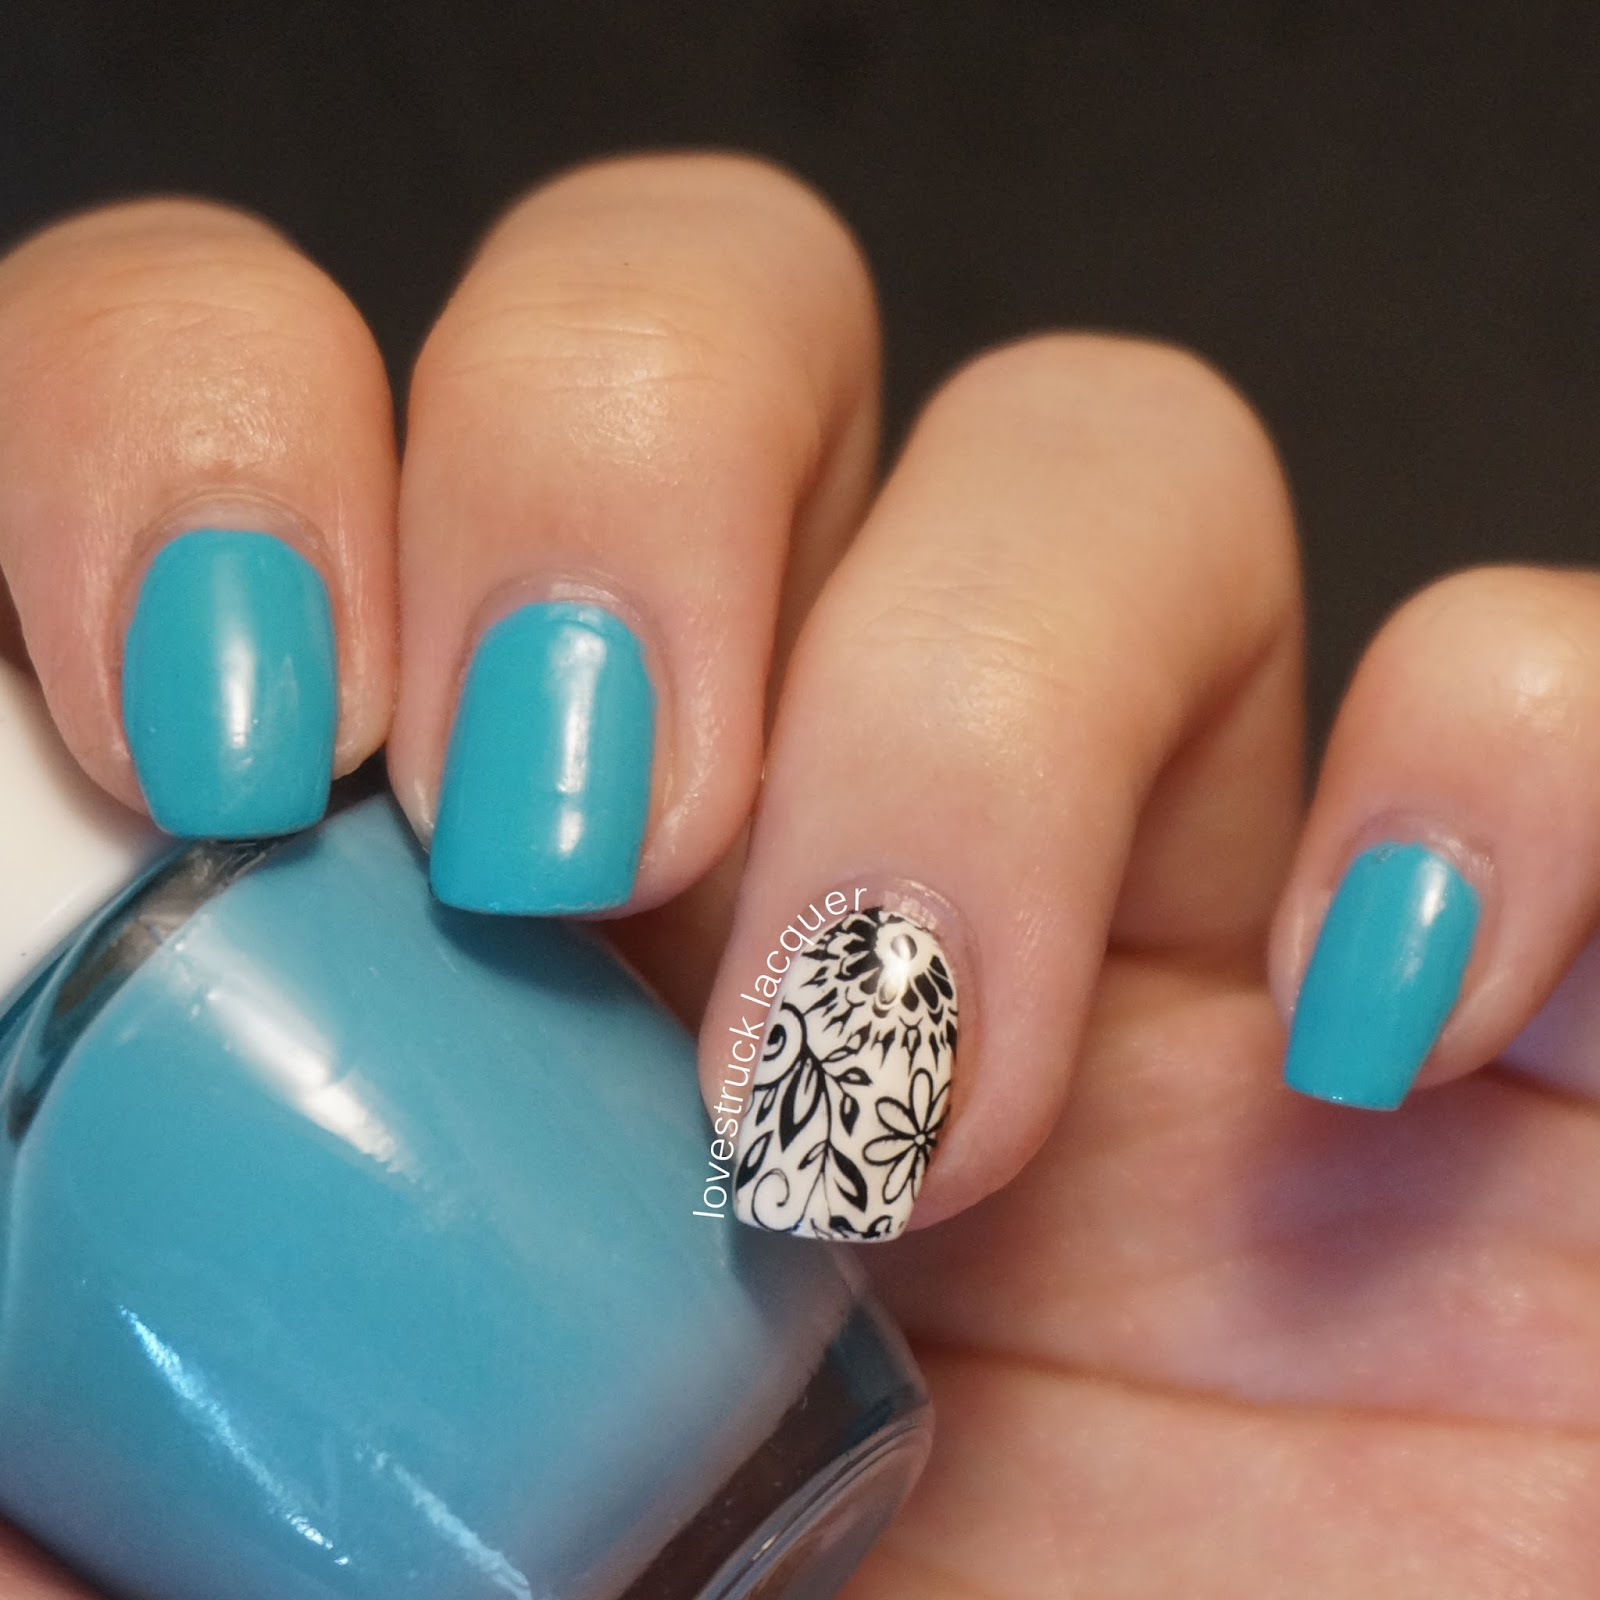 Lovestruck Lacquer: Turquoise with Black and White Floral Accent Nail